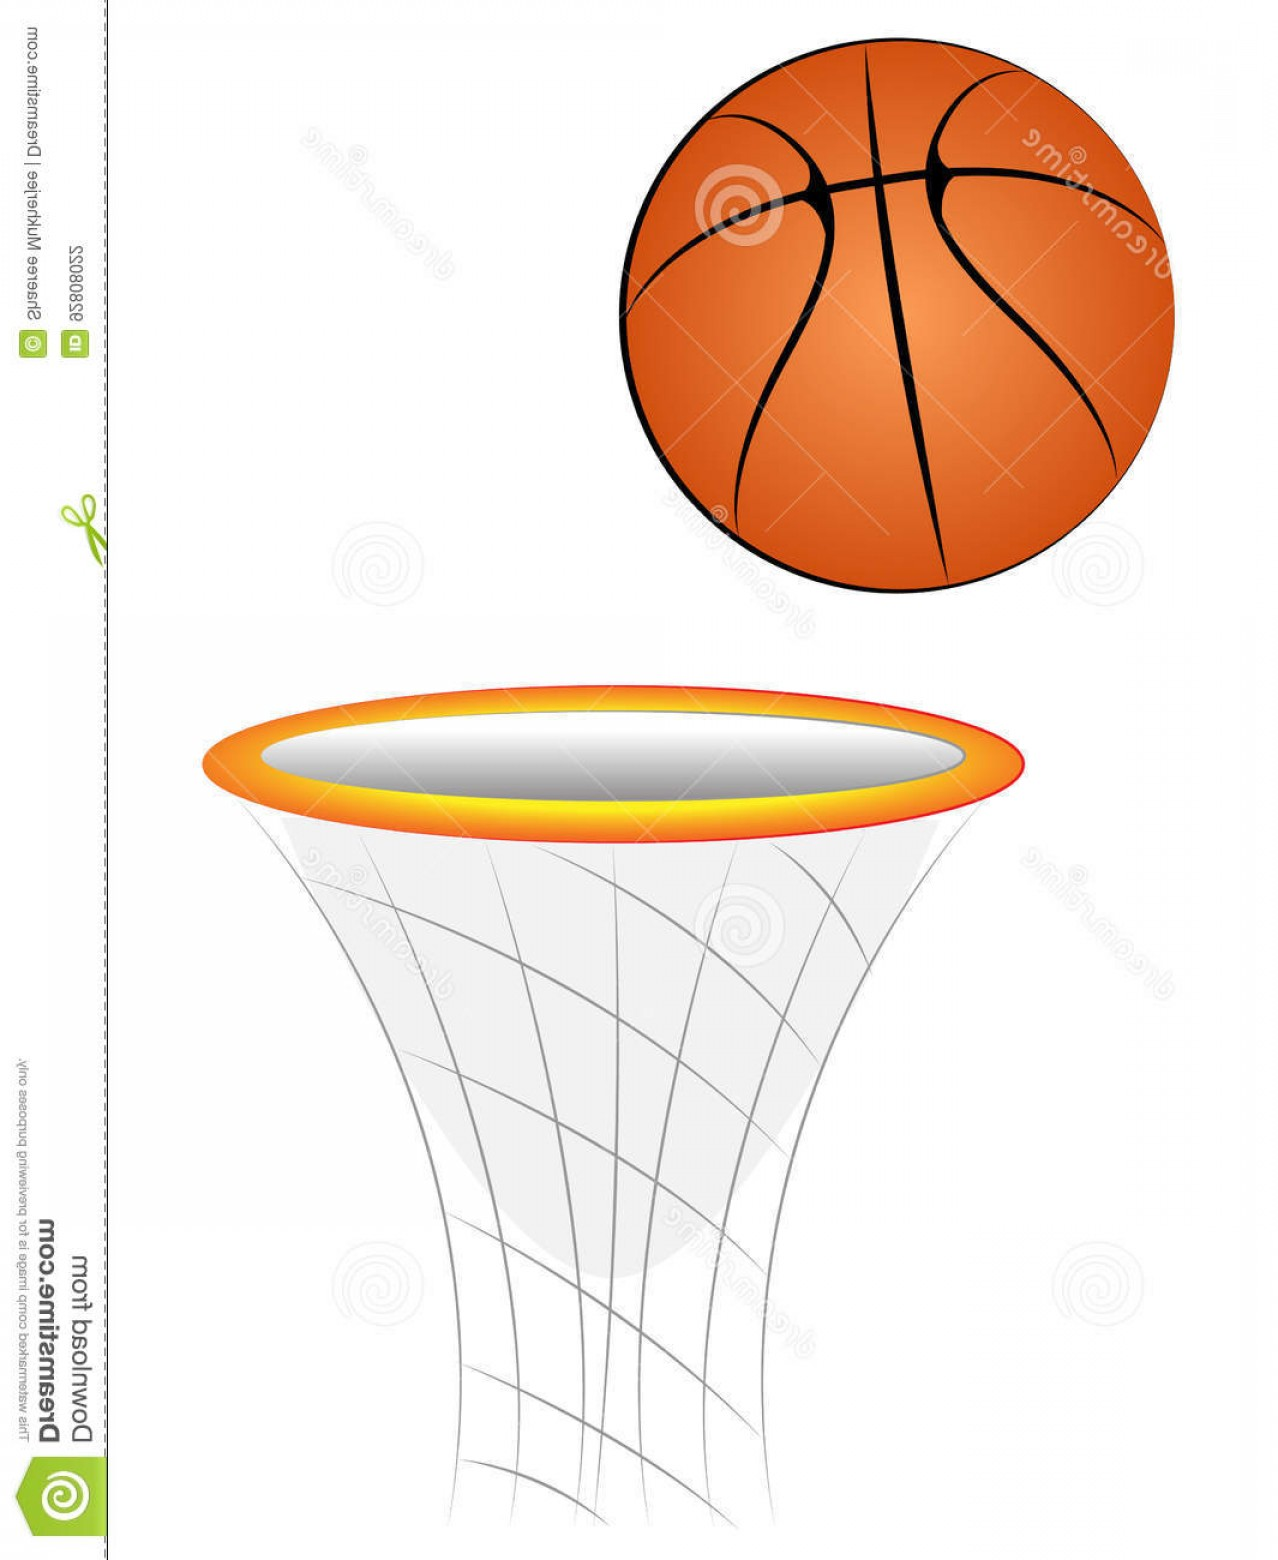 Cartoon Basketball Vector: Stock Illustration Cartoon Vector Basketball Basket Illustration Image